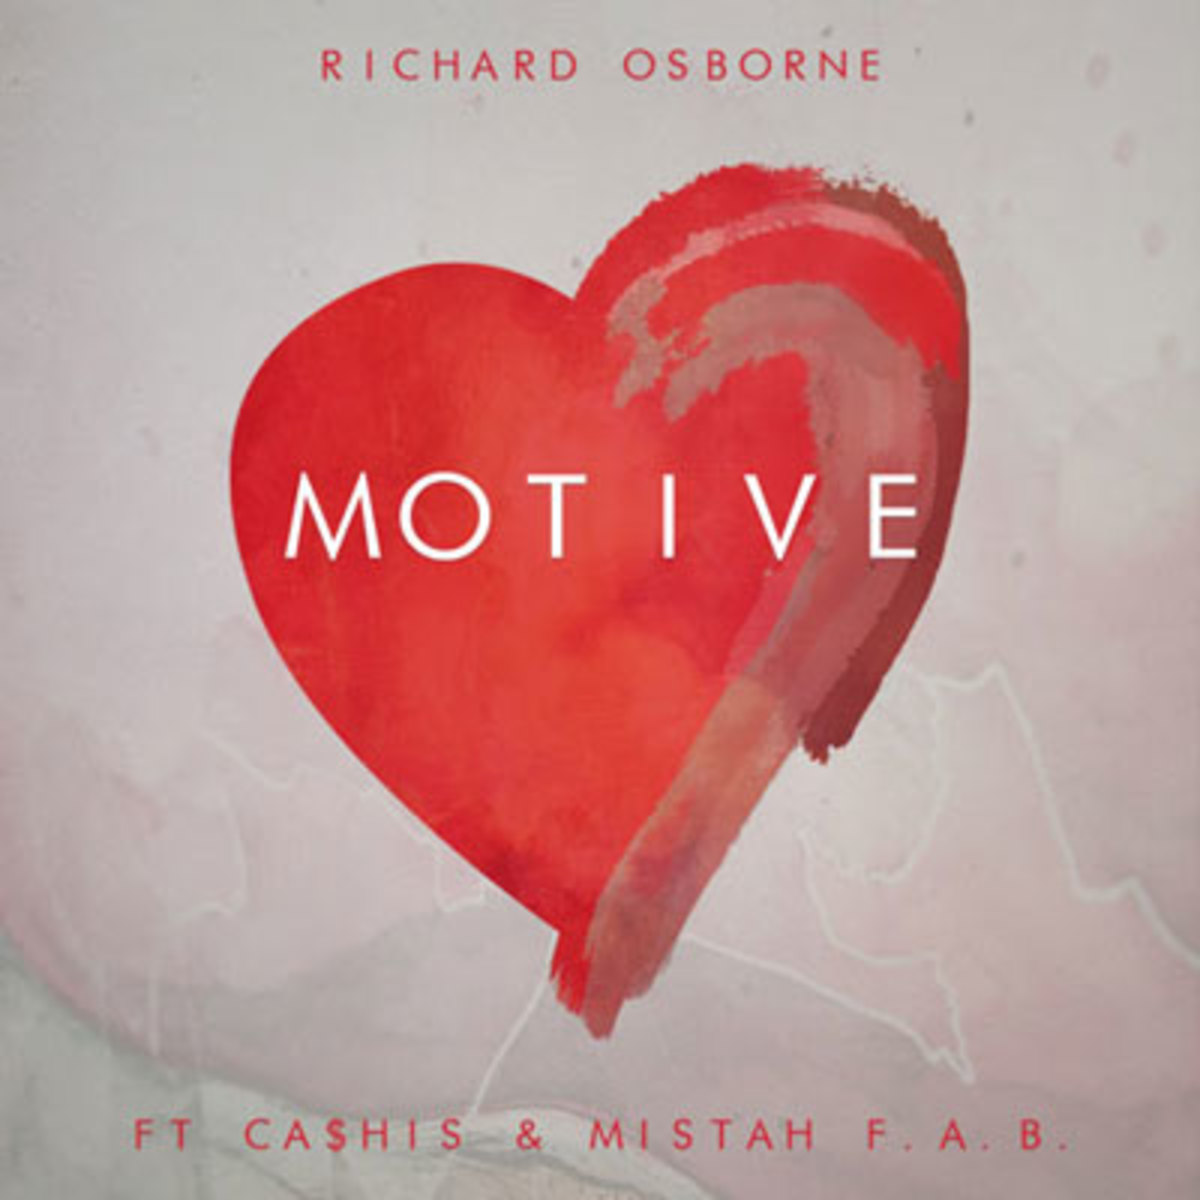 richardos-motive.jpg